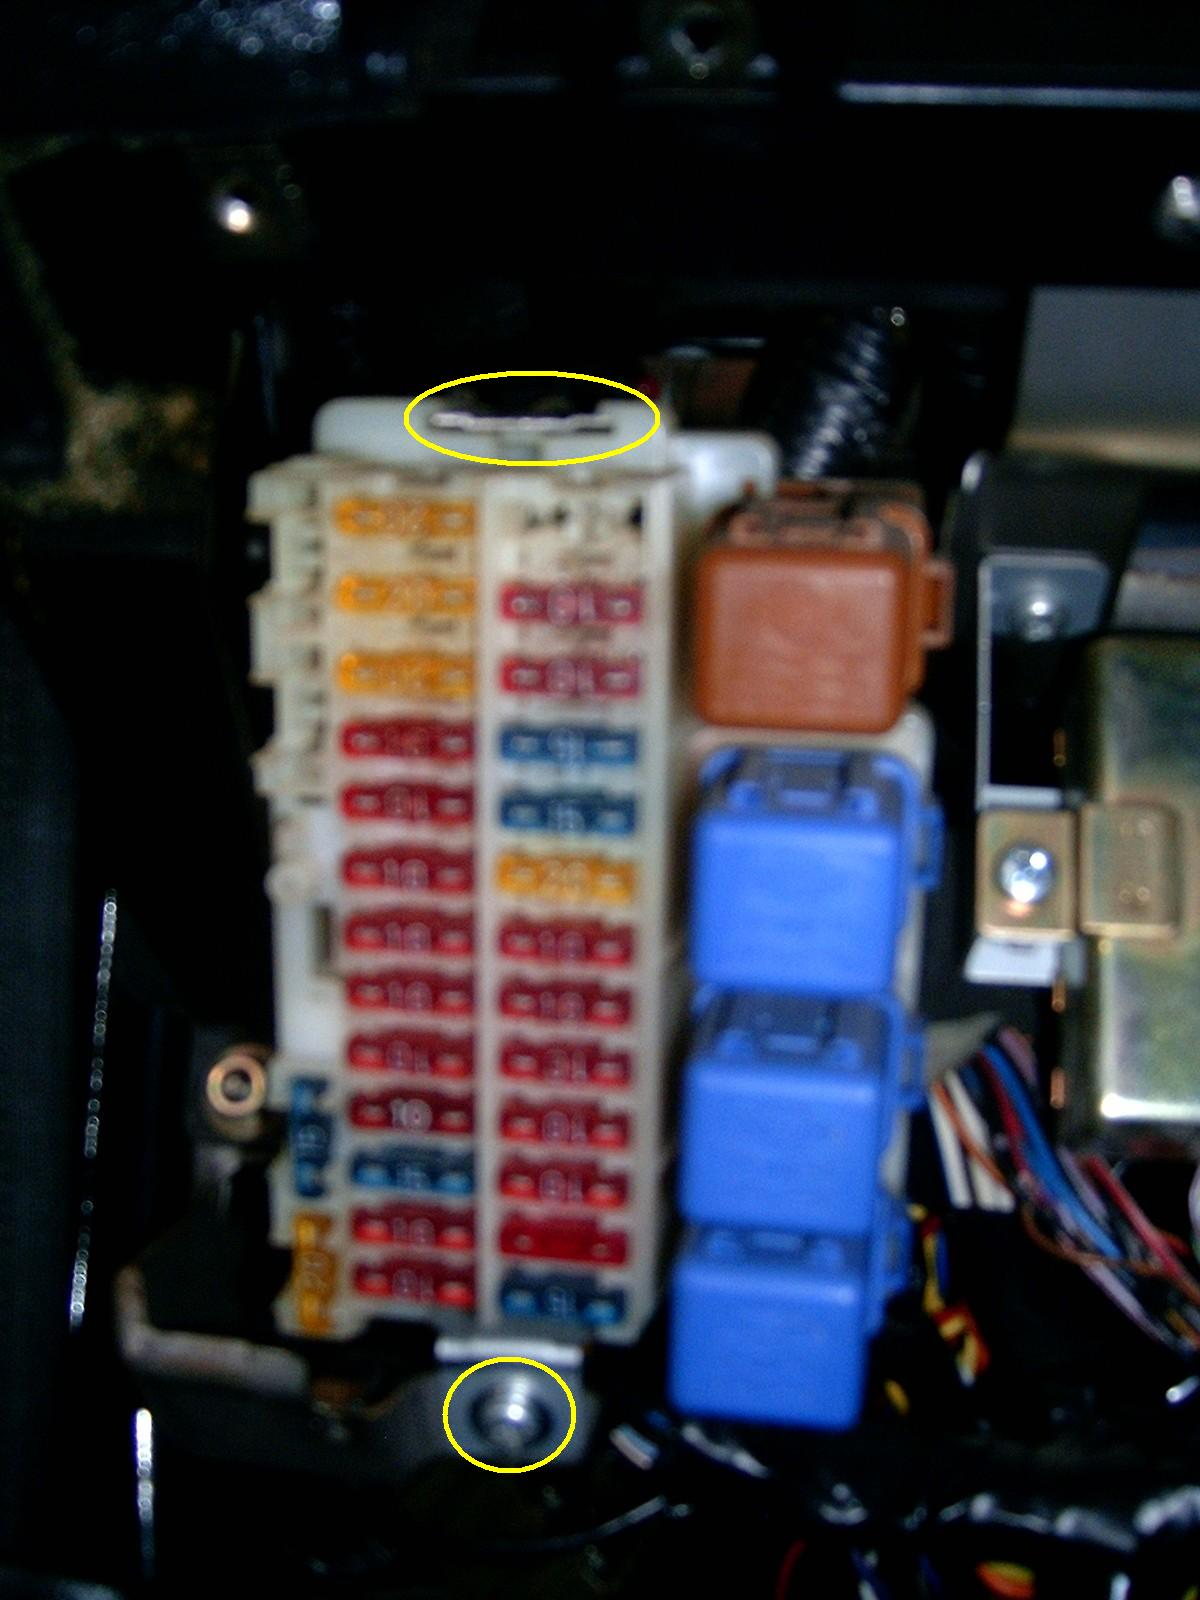 nissan_maxima_dash_removal_18 nissan maxima digital dash hud tutorial 1998 nissan maxima wiring diagram electrical system at crackthecode.co